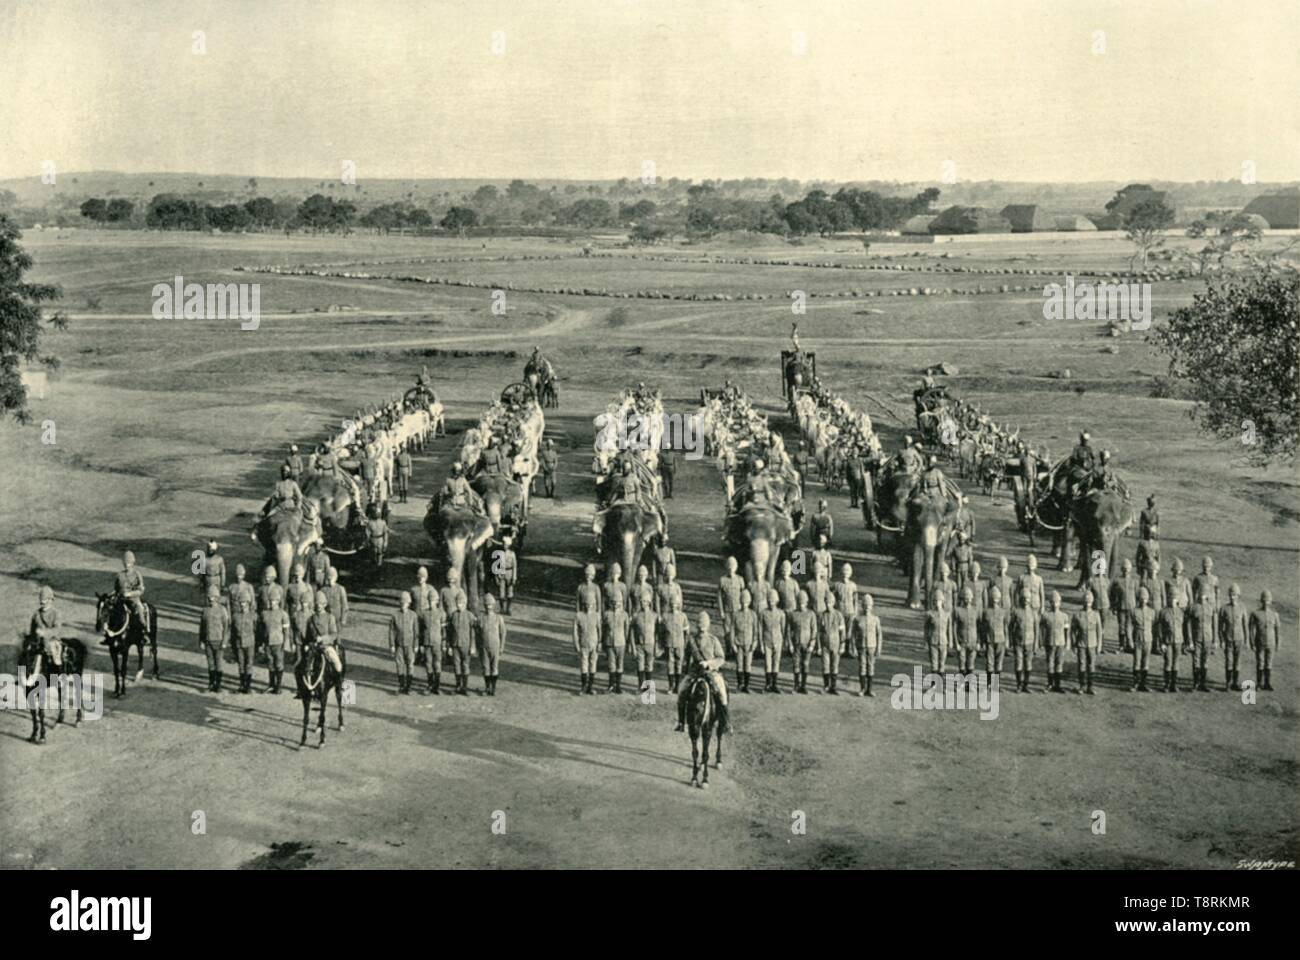 "'An Elephant Battery, ""Camp of Exercise"", Rawal Pindi', c1890, (1901). British and Indian soldiers with elephants at Rawalpindi in India, (now Pakistan). From ""The Life and Deeds of Earl Roberts, Vol. III. - To The End of Lord Roberts's Indian Career"", by J. Maclaren Cobban. [T. C. & E. C. Jack, Edinburgh, 1901] - Stock Image"